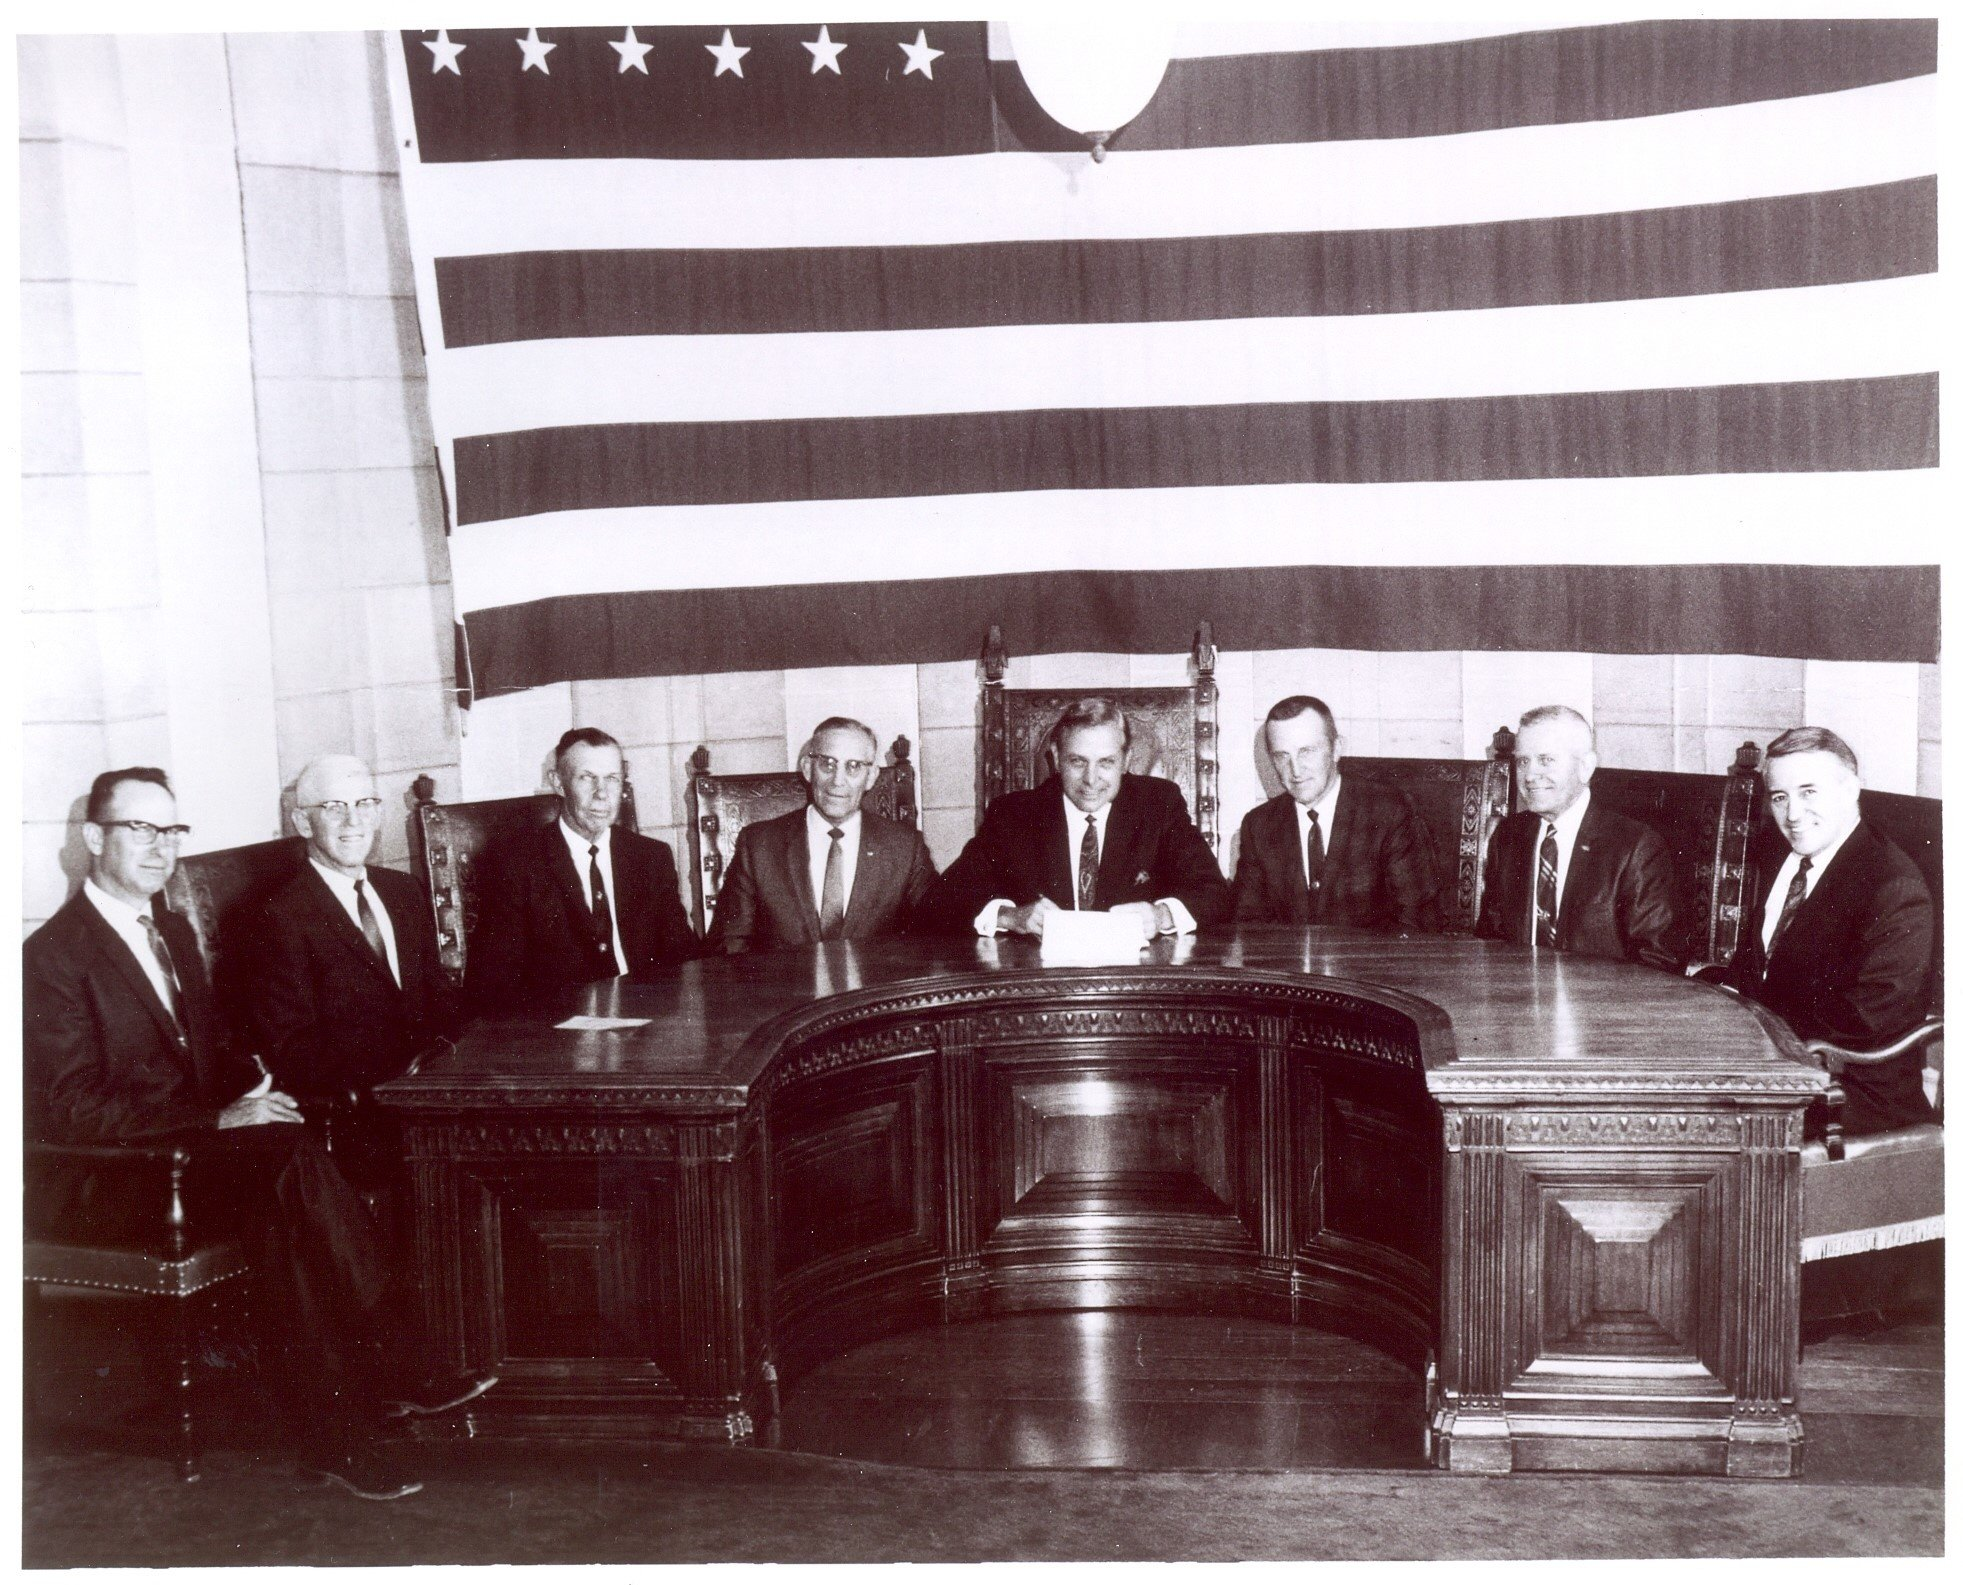 From left:  Harold Siek, Herman Link, Chet Ellis, Senator Maurice Kremer, Governor Tiemann, Warren Patefield, Milton Fricke, and Warren Fairchild.